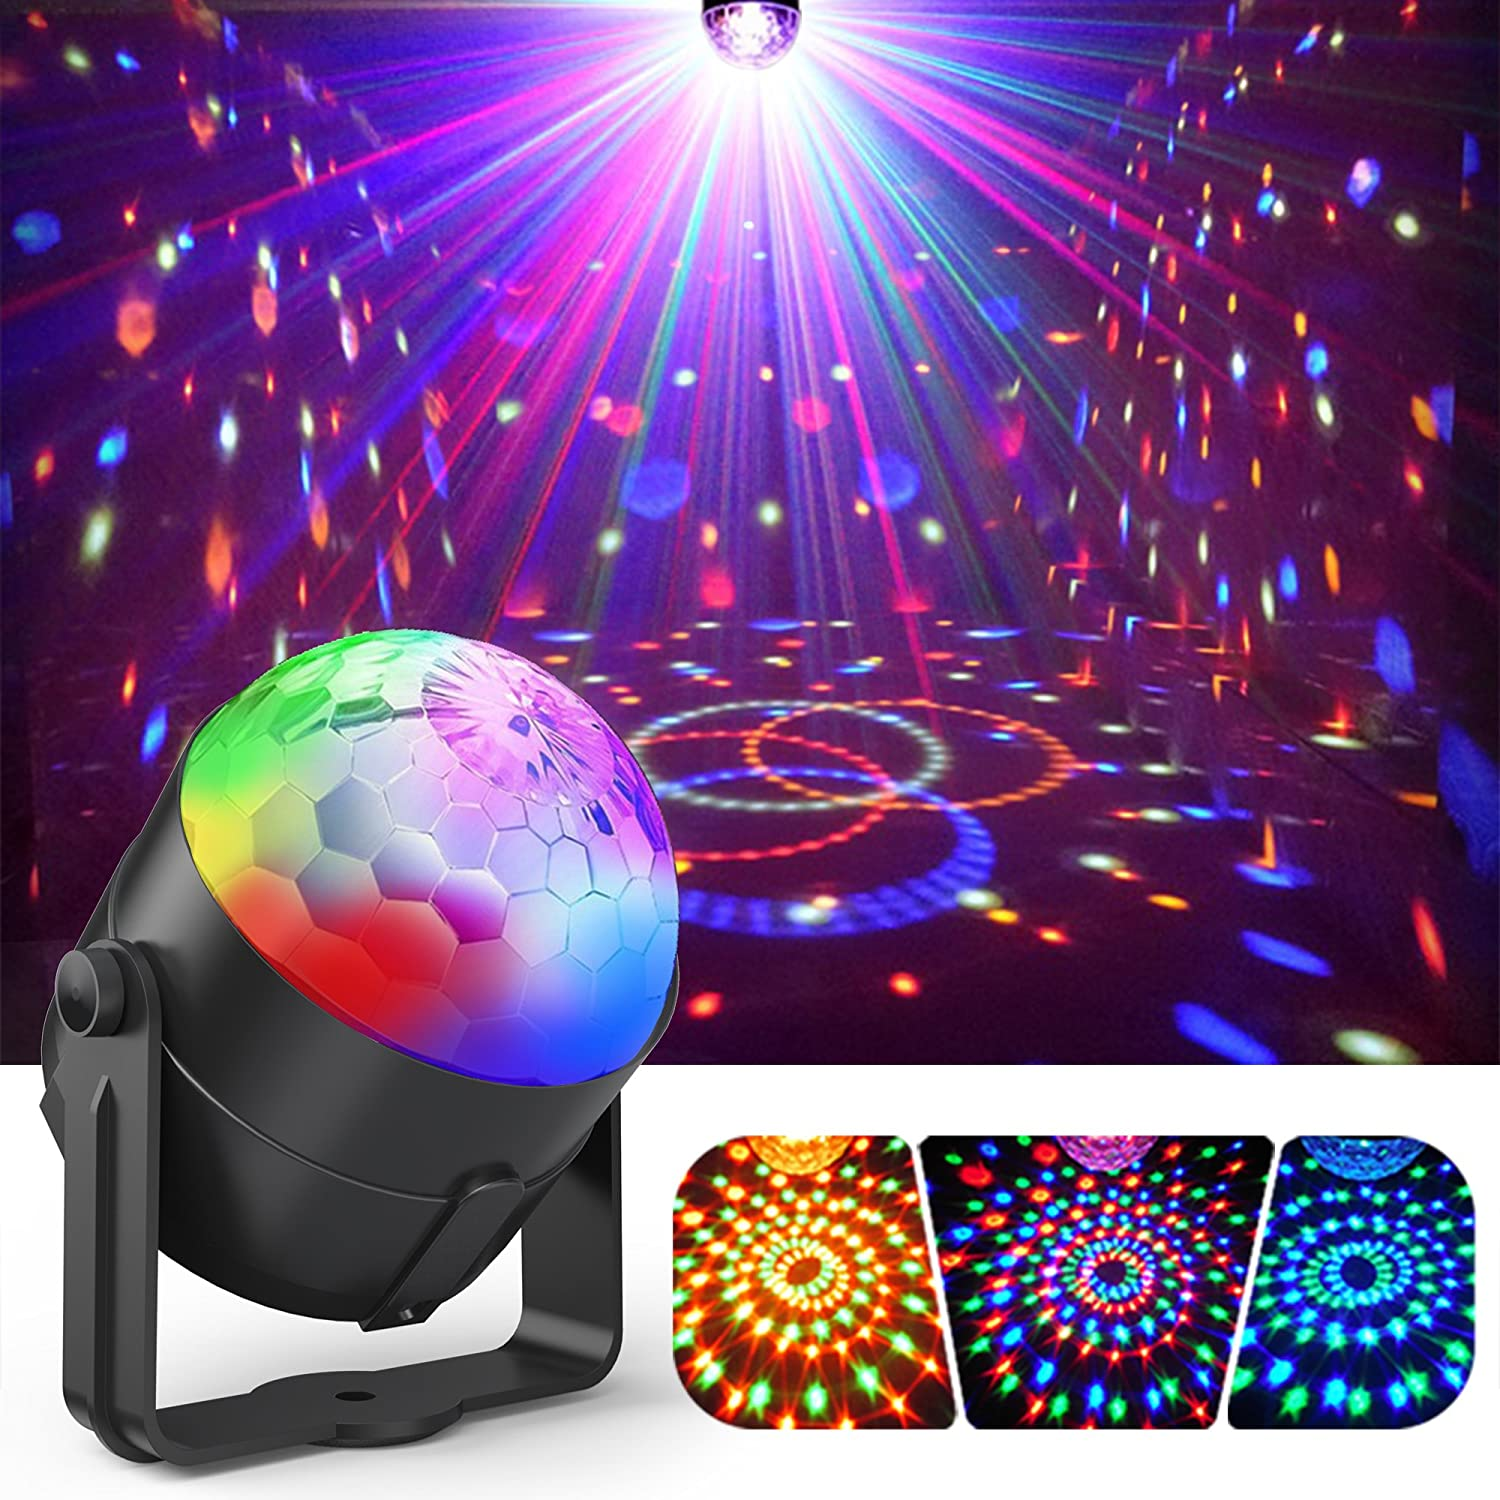 Stage Lighting Effect Lights & Lighting Projector Christmas Light Effect Party Music Lamp Led Stage Light Disco Lights Dj Disco Ball Lumiere Sound Activated Laser Reputation First